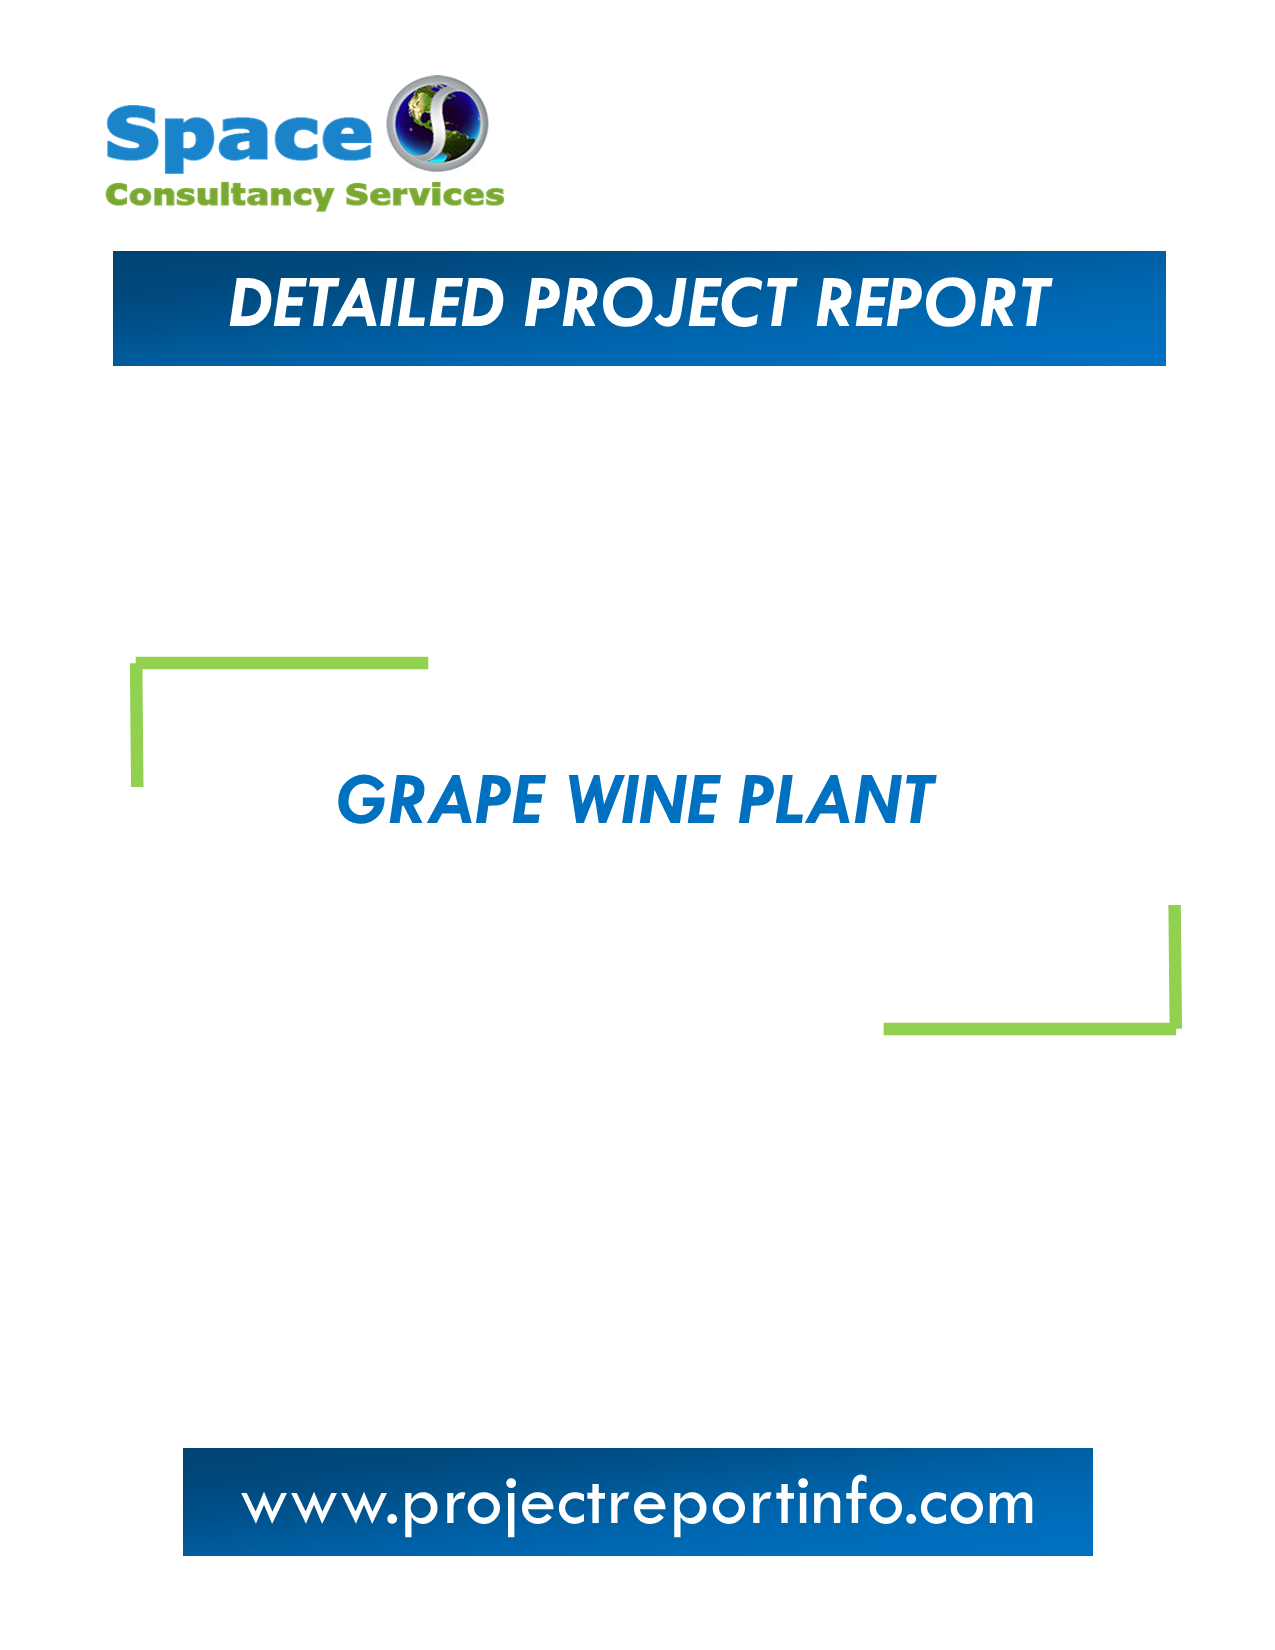 Project Report on Grape Wine Plant